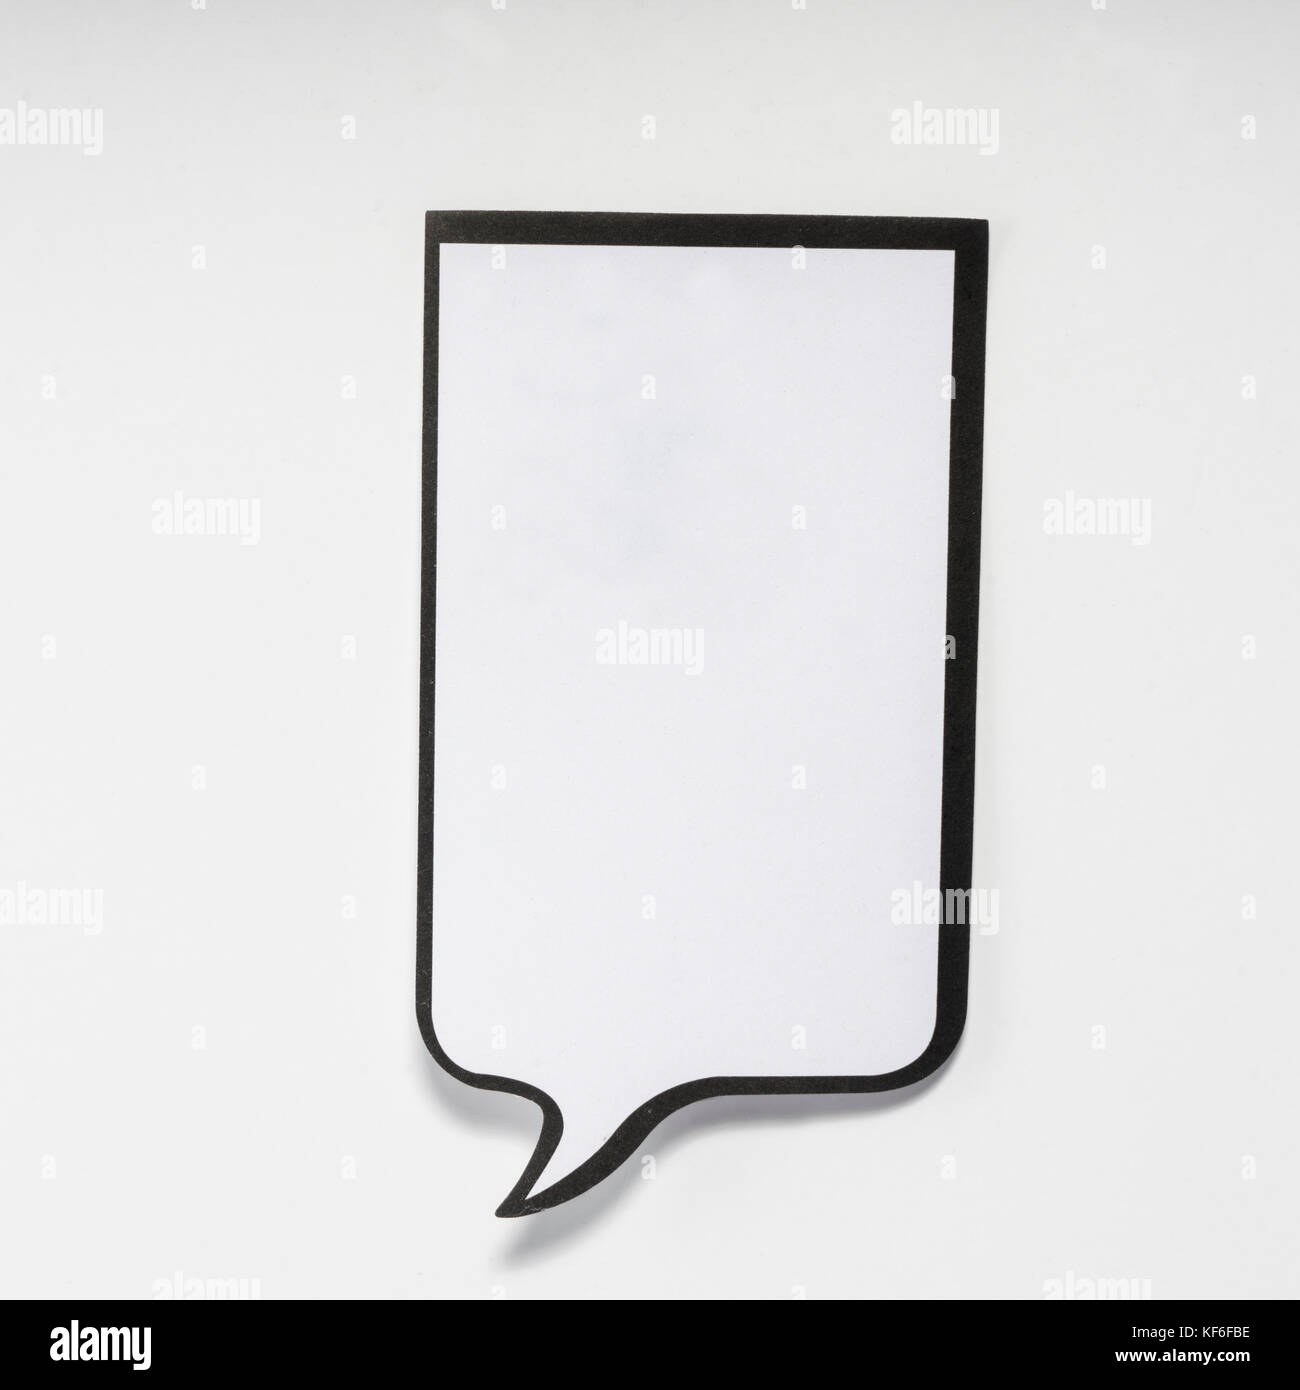 a white memo pad with the shape of a comic without inscriptions - Stock Image